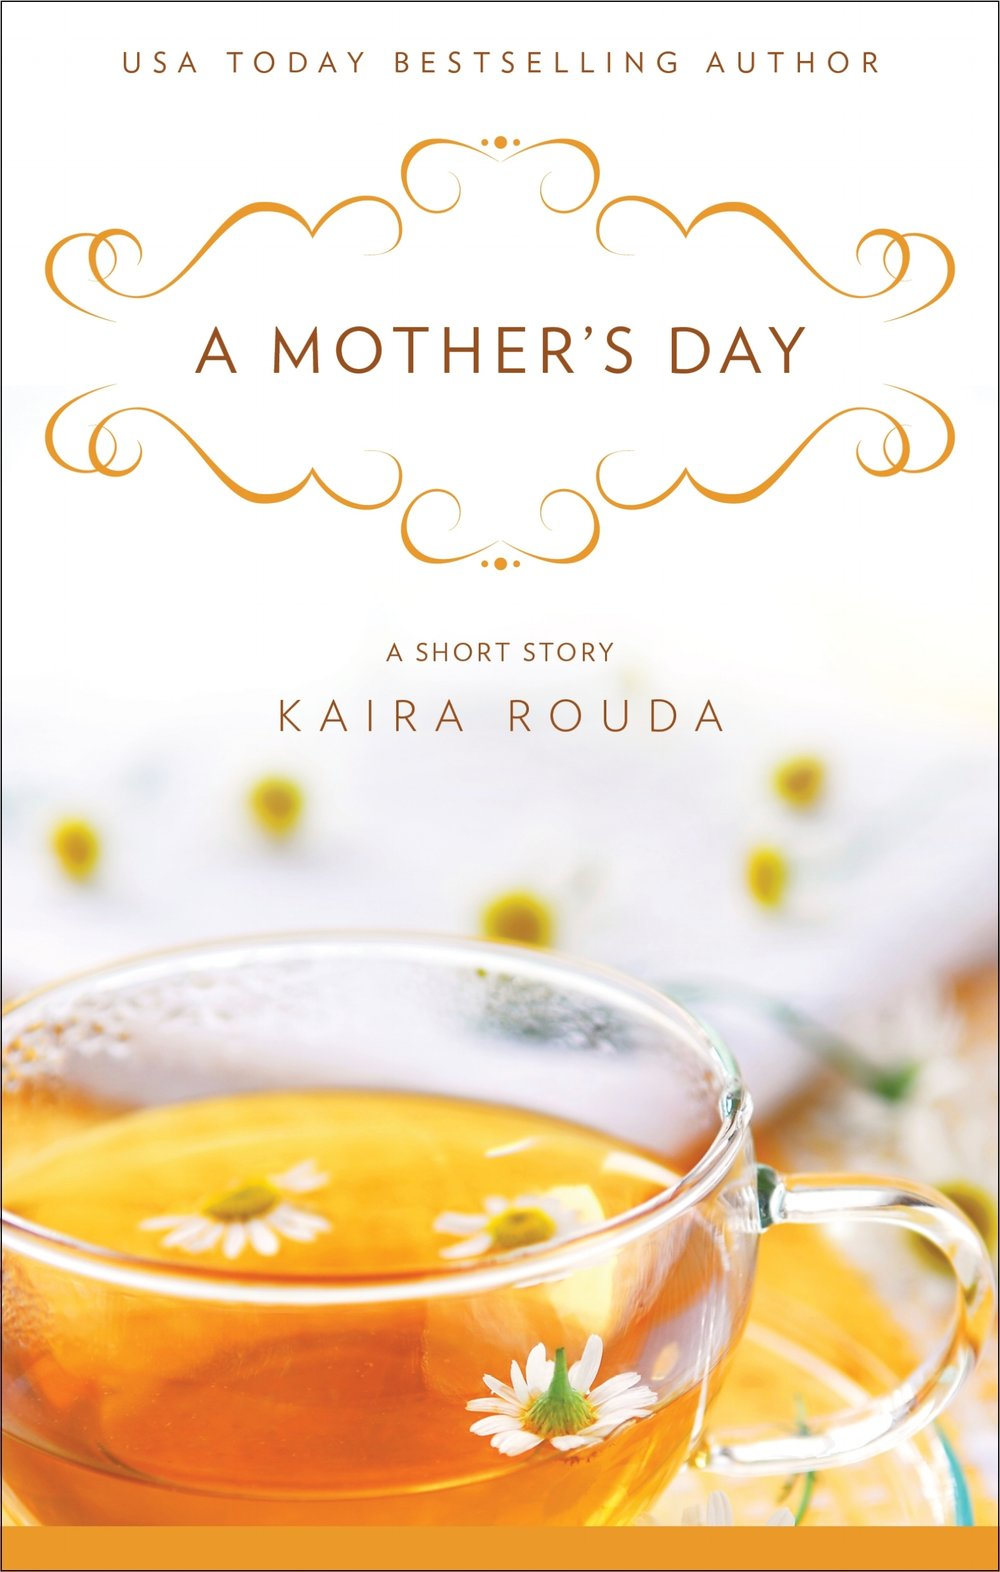 A Mother's Day - Kaira Rouda    An original short story from the celebrated author of the bestselling novel Here, Home, Home, Hope...  Three mothers. Three sons. One day that changes them all forever.